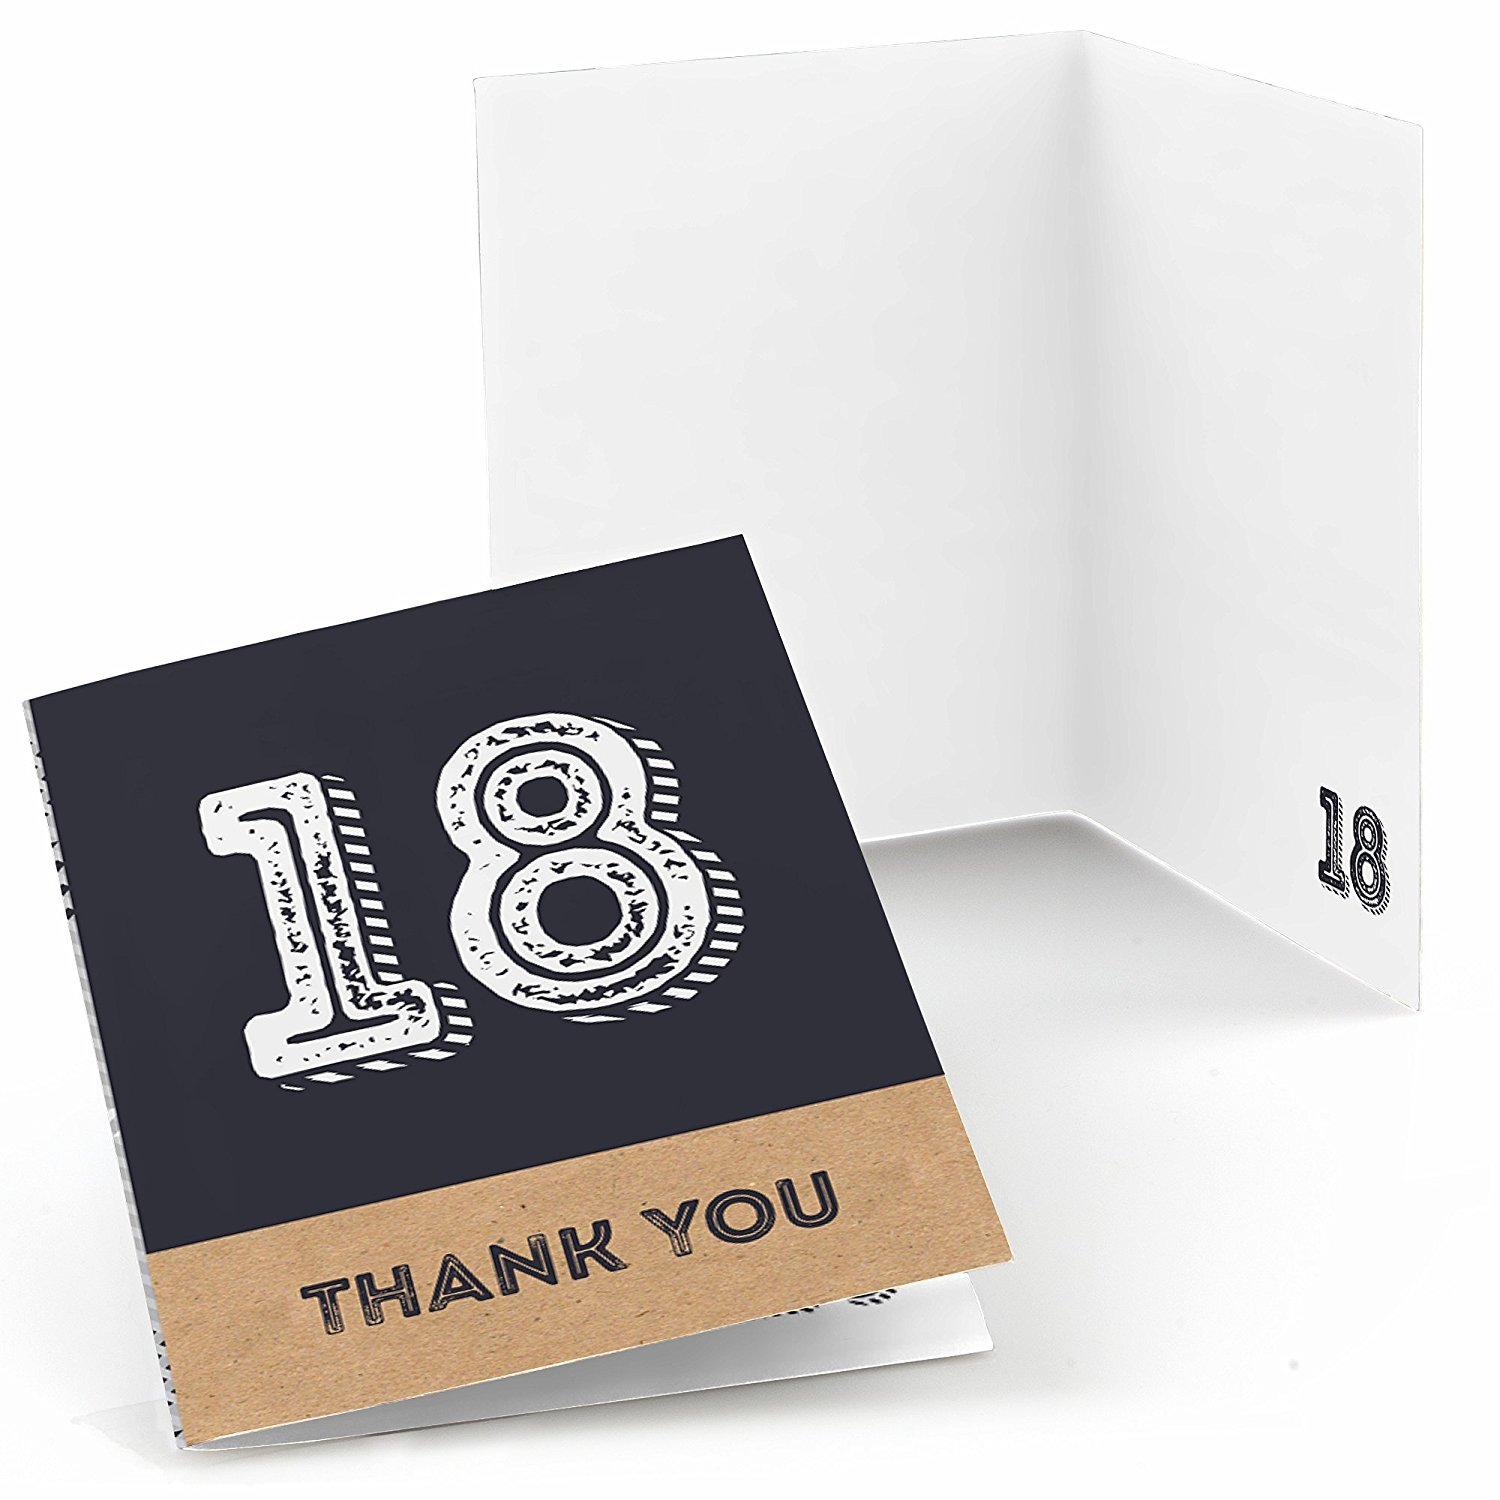 Cheap adult birthday cards find adult birthday cards deals on line get quotations 18th milestone birthday time to adult birthday party thank you cards 8 count kristyandbryce Image collections